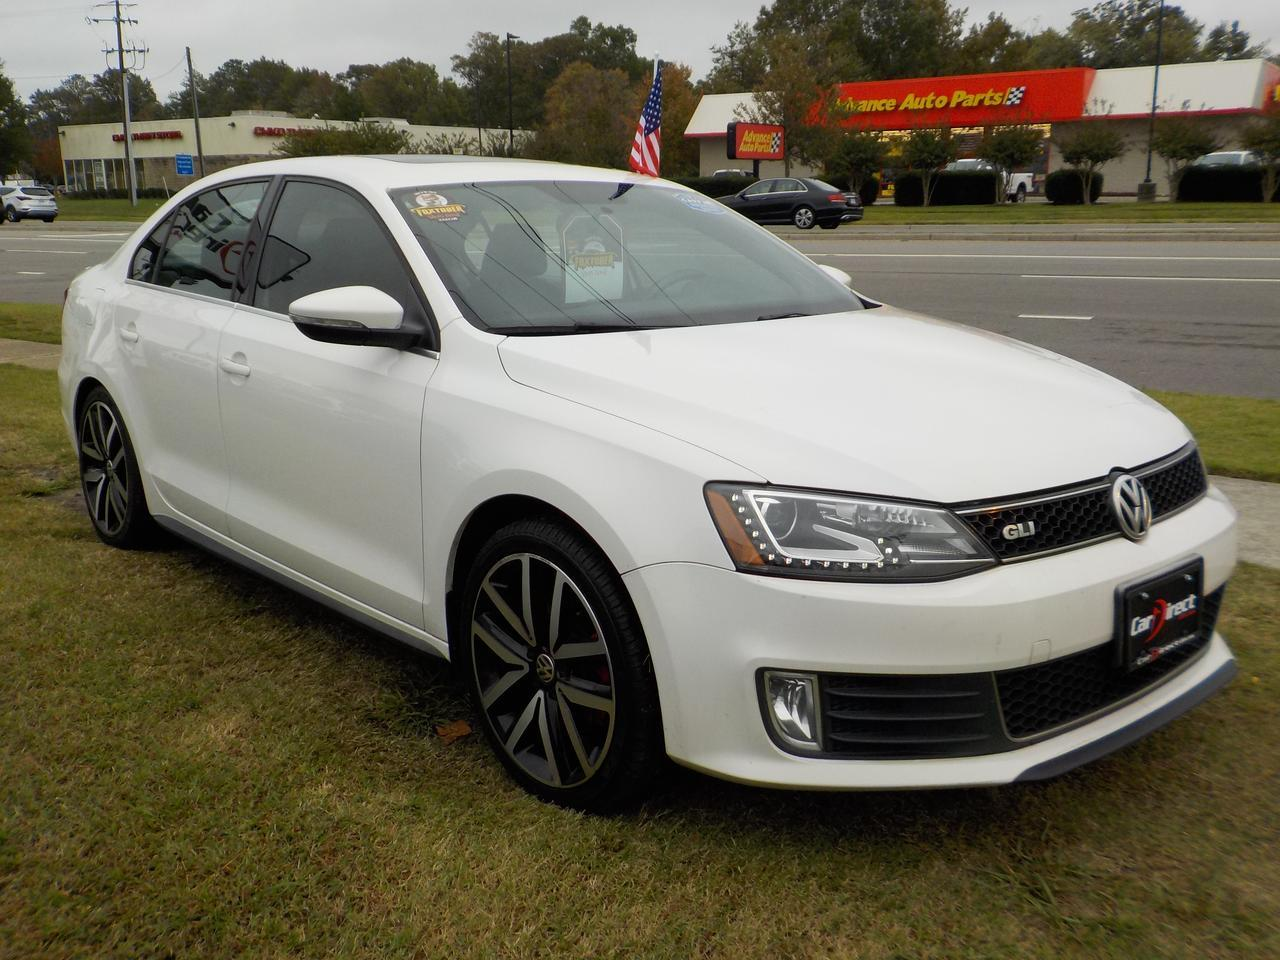 2013 VOLKSWAGEN GLI AUTOBAHN WITH NAV, LEATHER HEATED SEATS, BLUETOOTH, SUNROOF! Virginia Beach VA